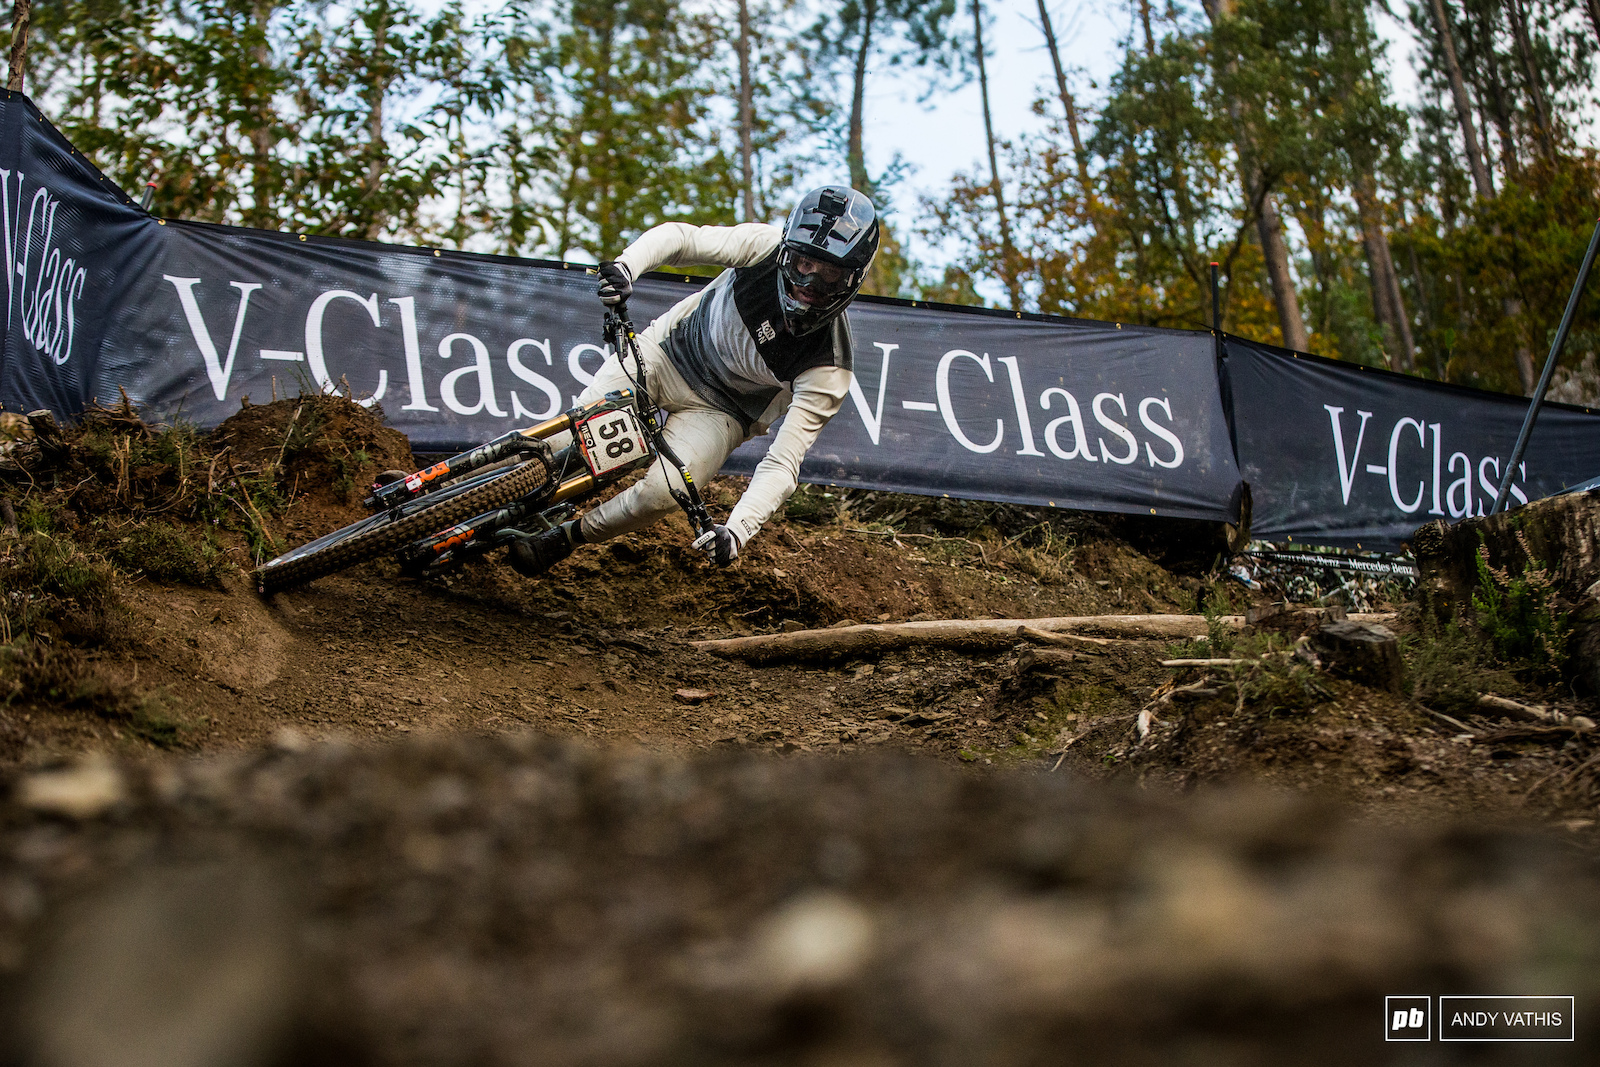 Matteo Iniguez tore the track apart today making all the right shapes.